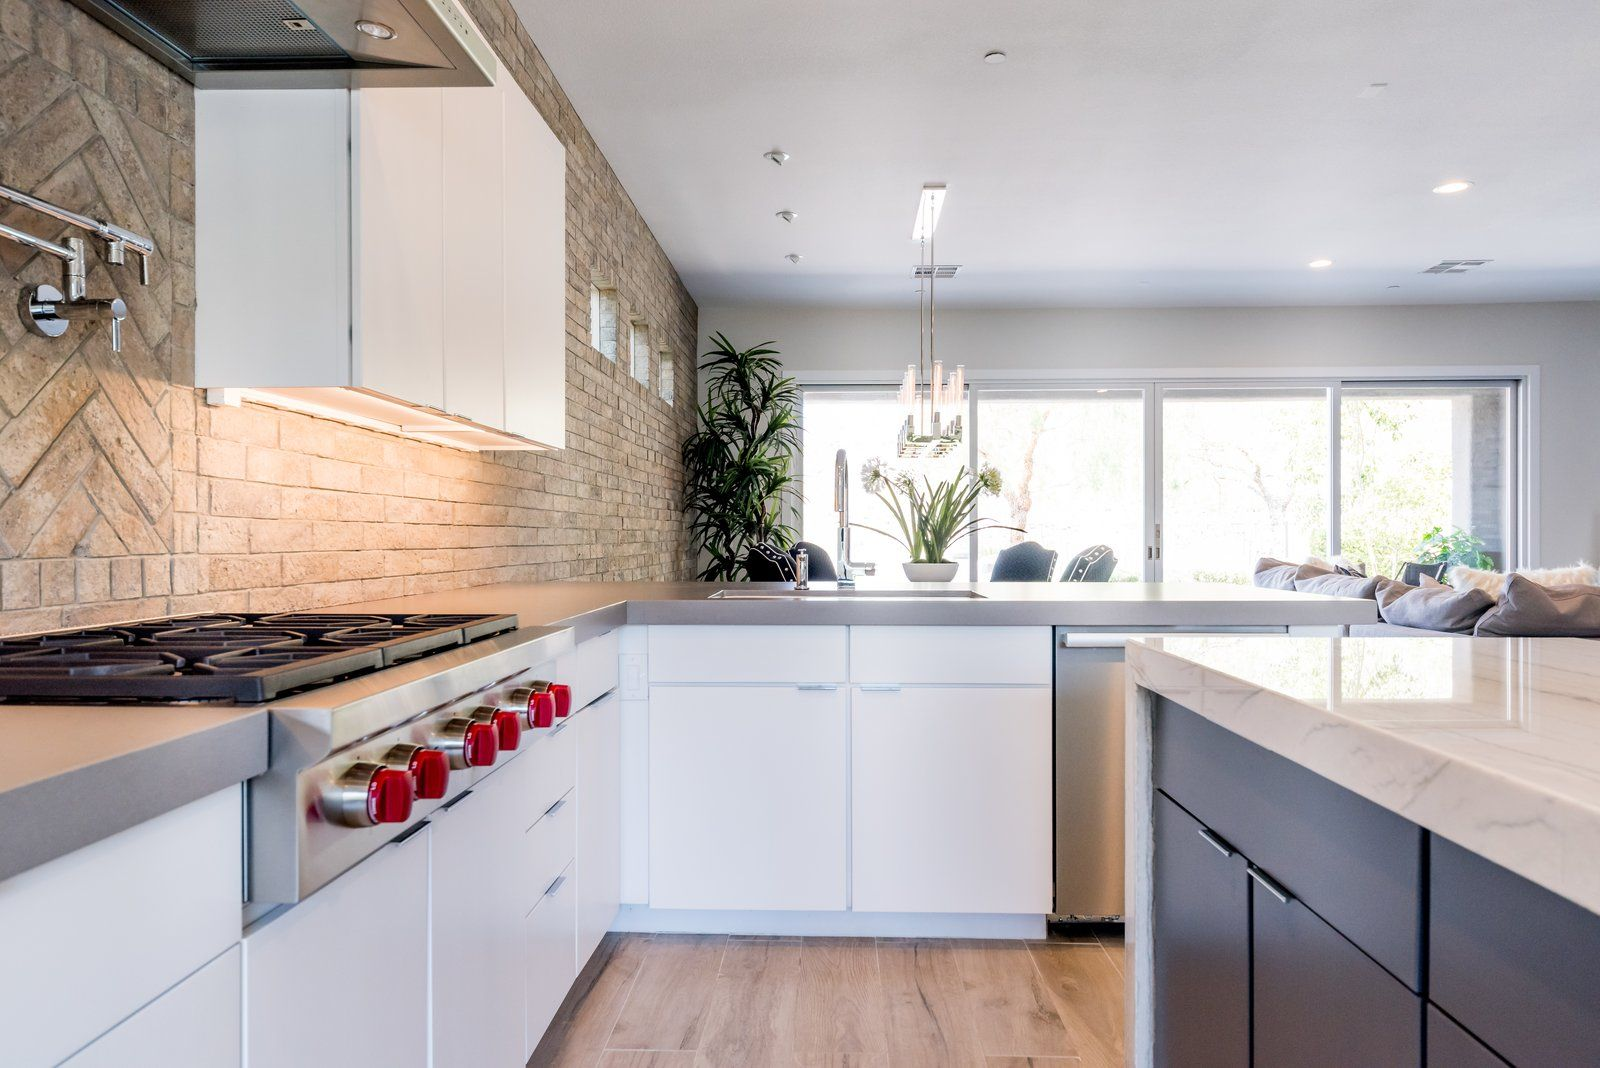 - 20 Dynamic Kitchens With Exposed Brick Backsplashes In 2020 (With Images)  Brick Backsplash, Brick Kitchen, Modern Kitchen